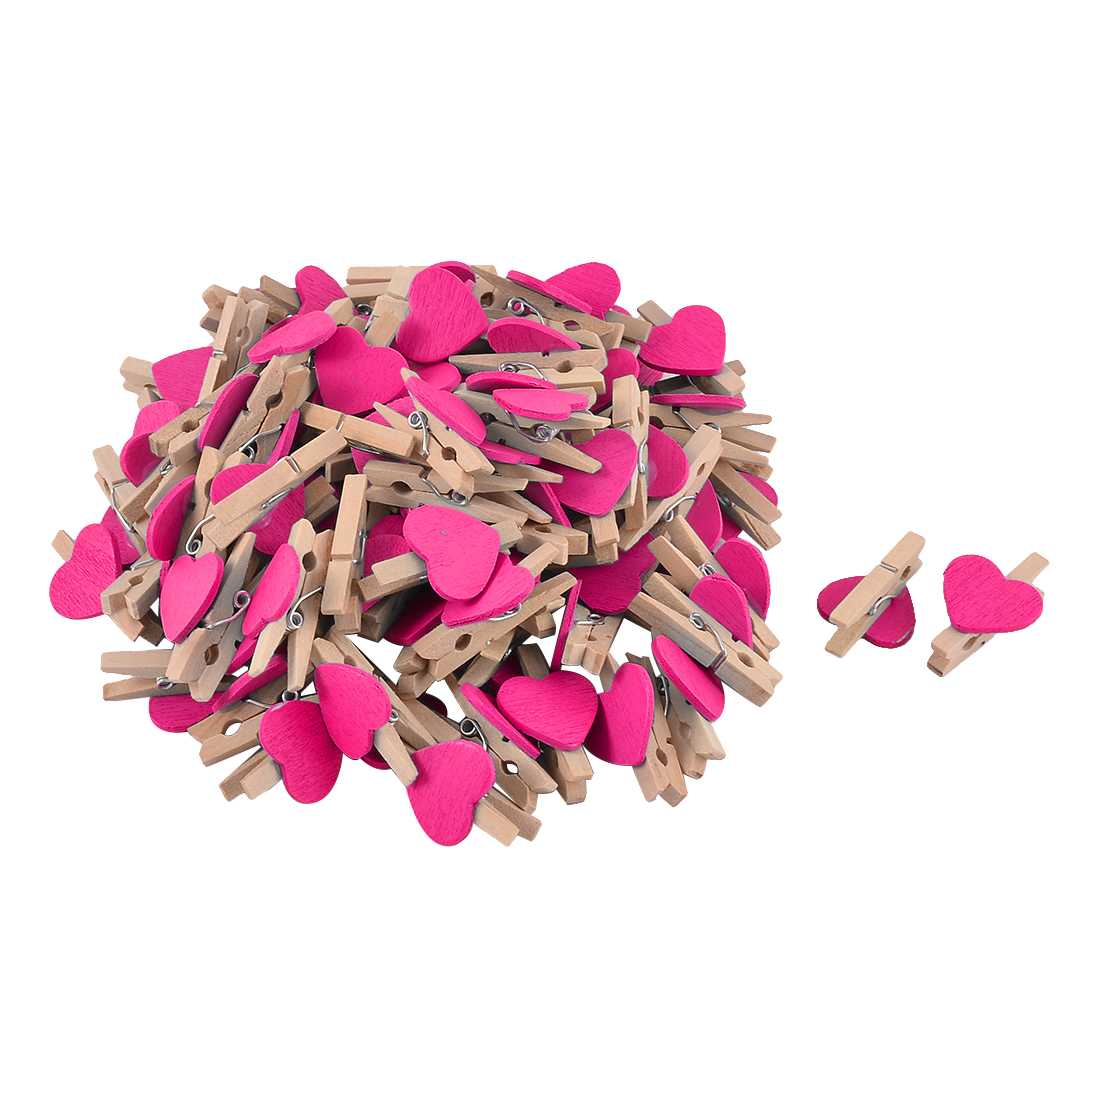 Unique Bargains Card Photo Clothes DIY Crafts Spring Pegs Mini Wooden Clip Fuchsia 100pcs